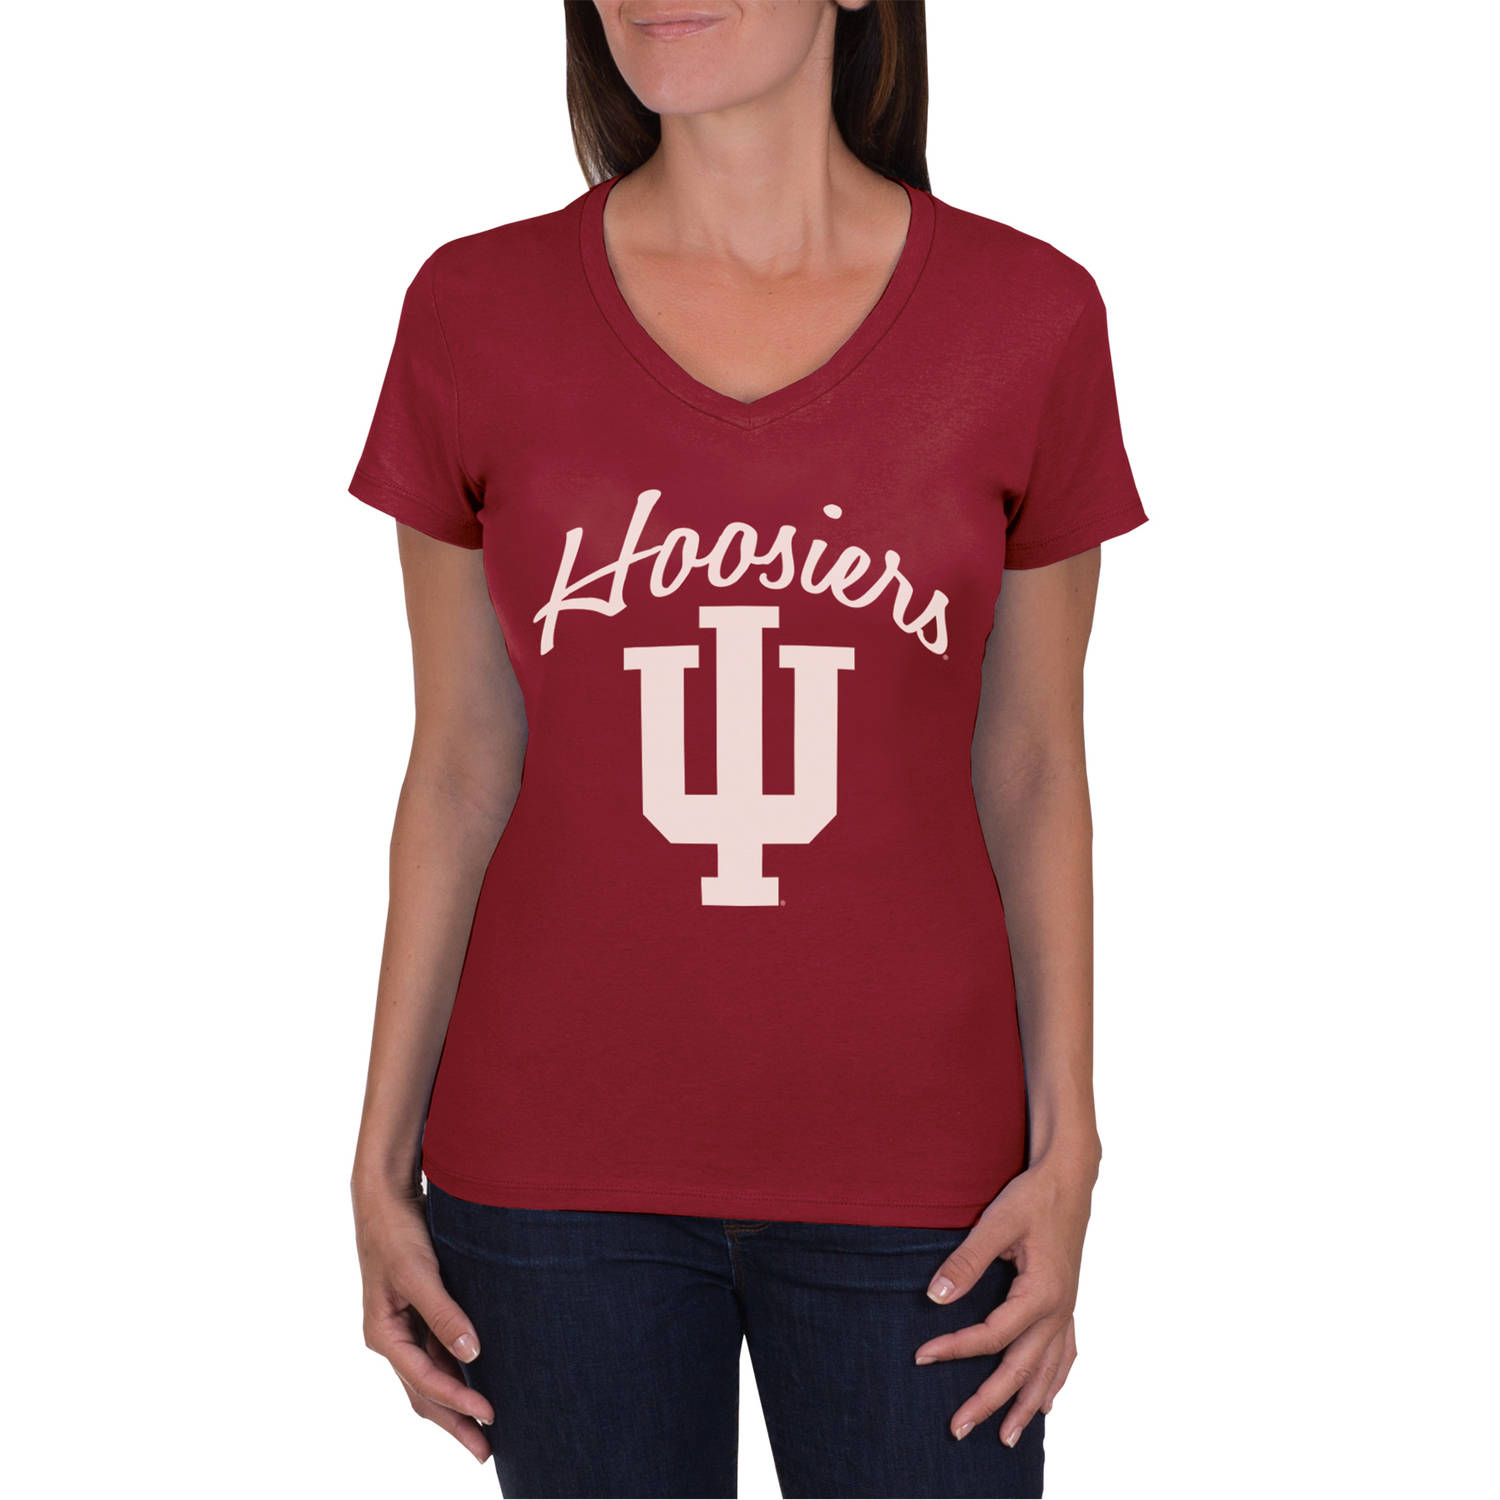 NCAA Indiana Hoosiers Women's V-Neck Tunic Cotton Tee Shirt